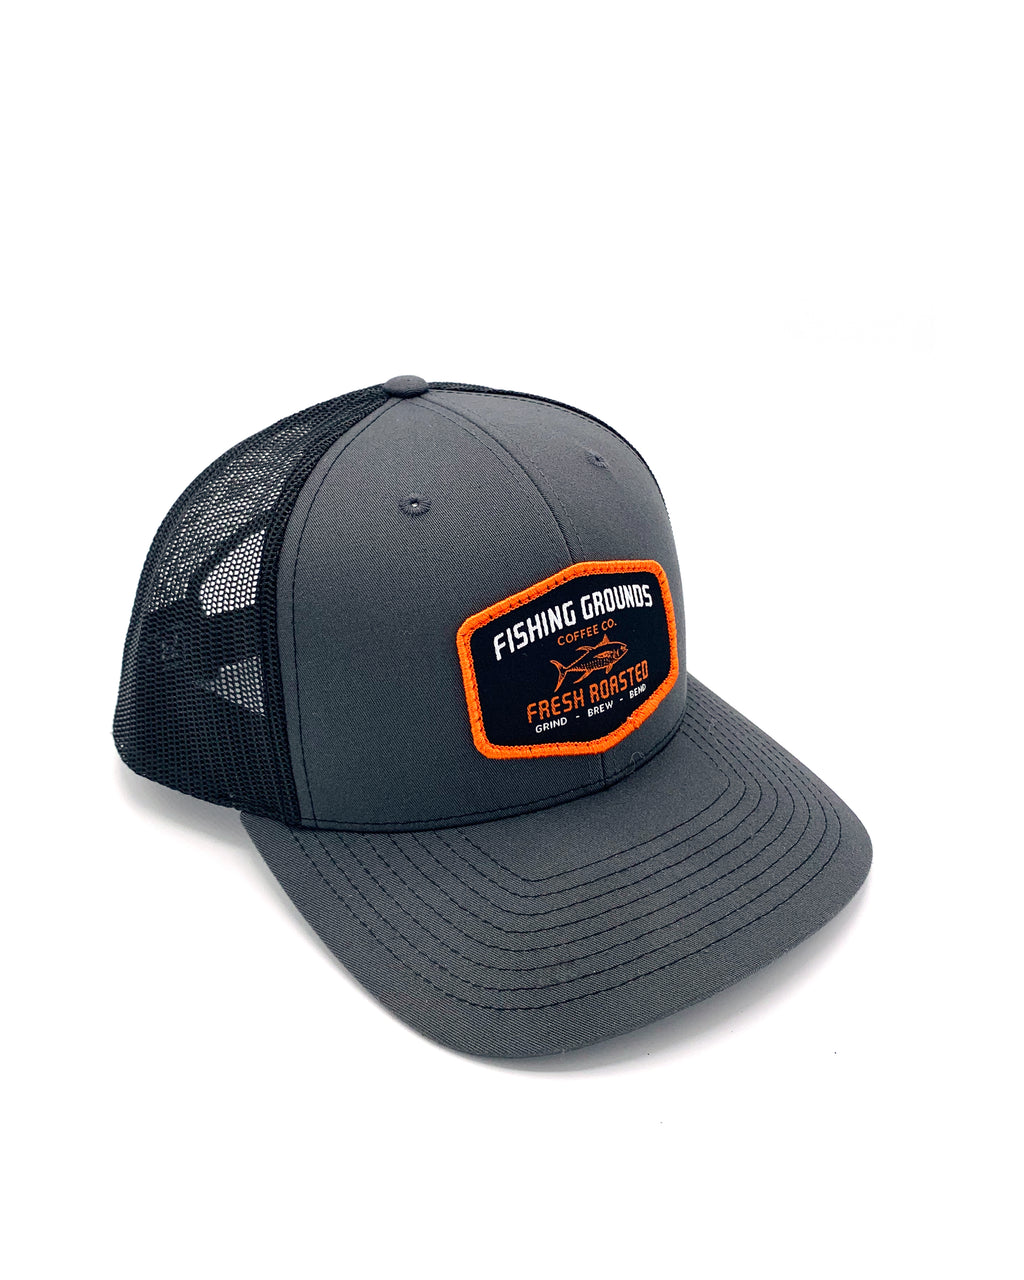 FG Patch Snap Back Trucker Hat with Semi-Curve Bill - Gray/Black - Fishing Grounds Coffee Company